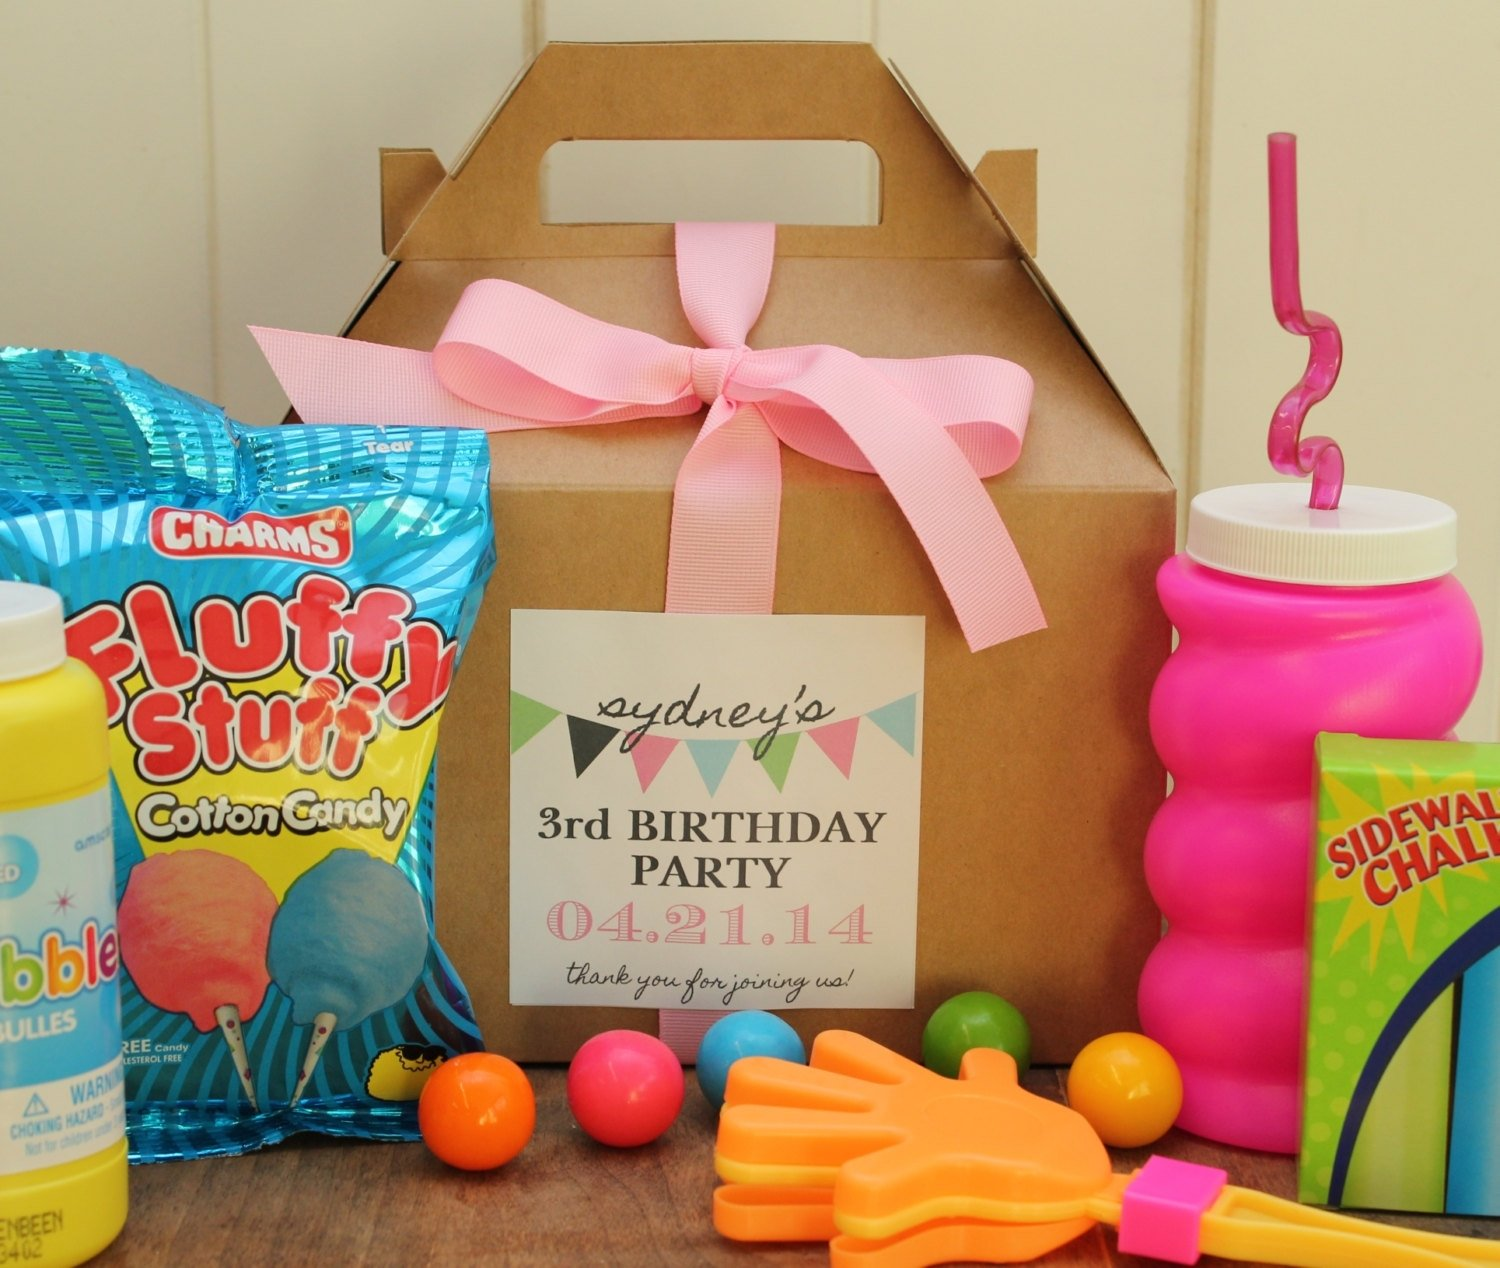 10 Spectacular Goodie Bag Ideas For Kids Birthday Parties astounding goodie bag ideas for kids birthday parties 28 besides 2021